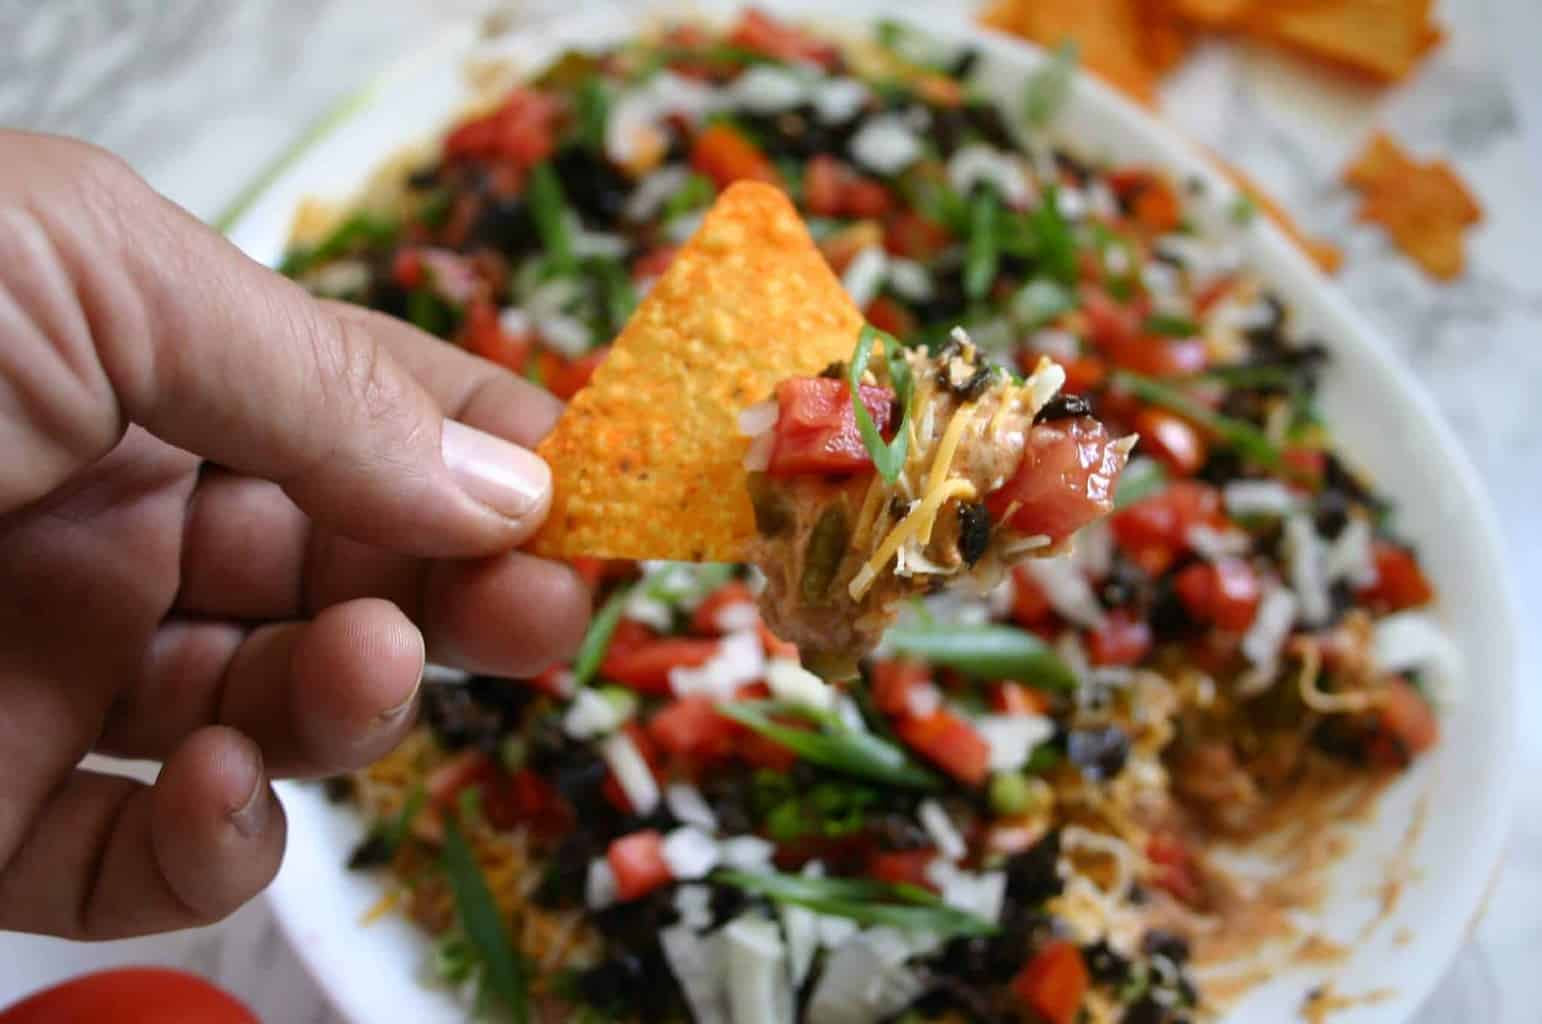 The best easy taco dip recipe - The perfect easy football party food!